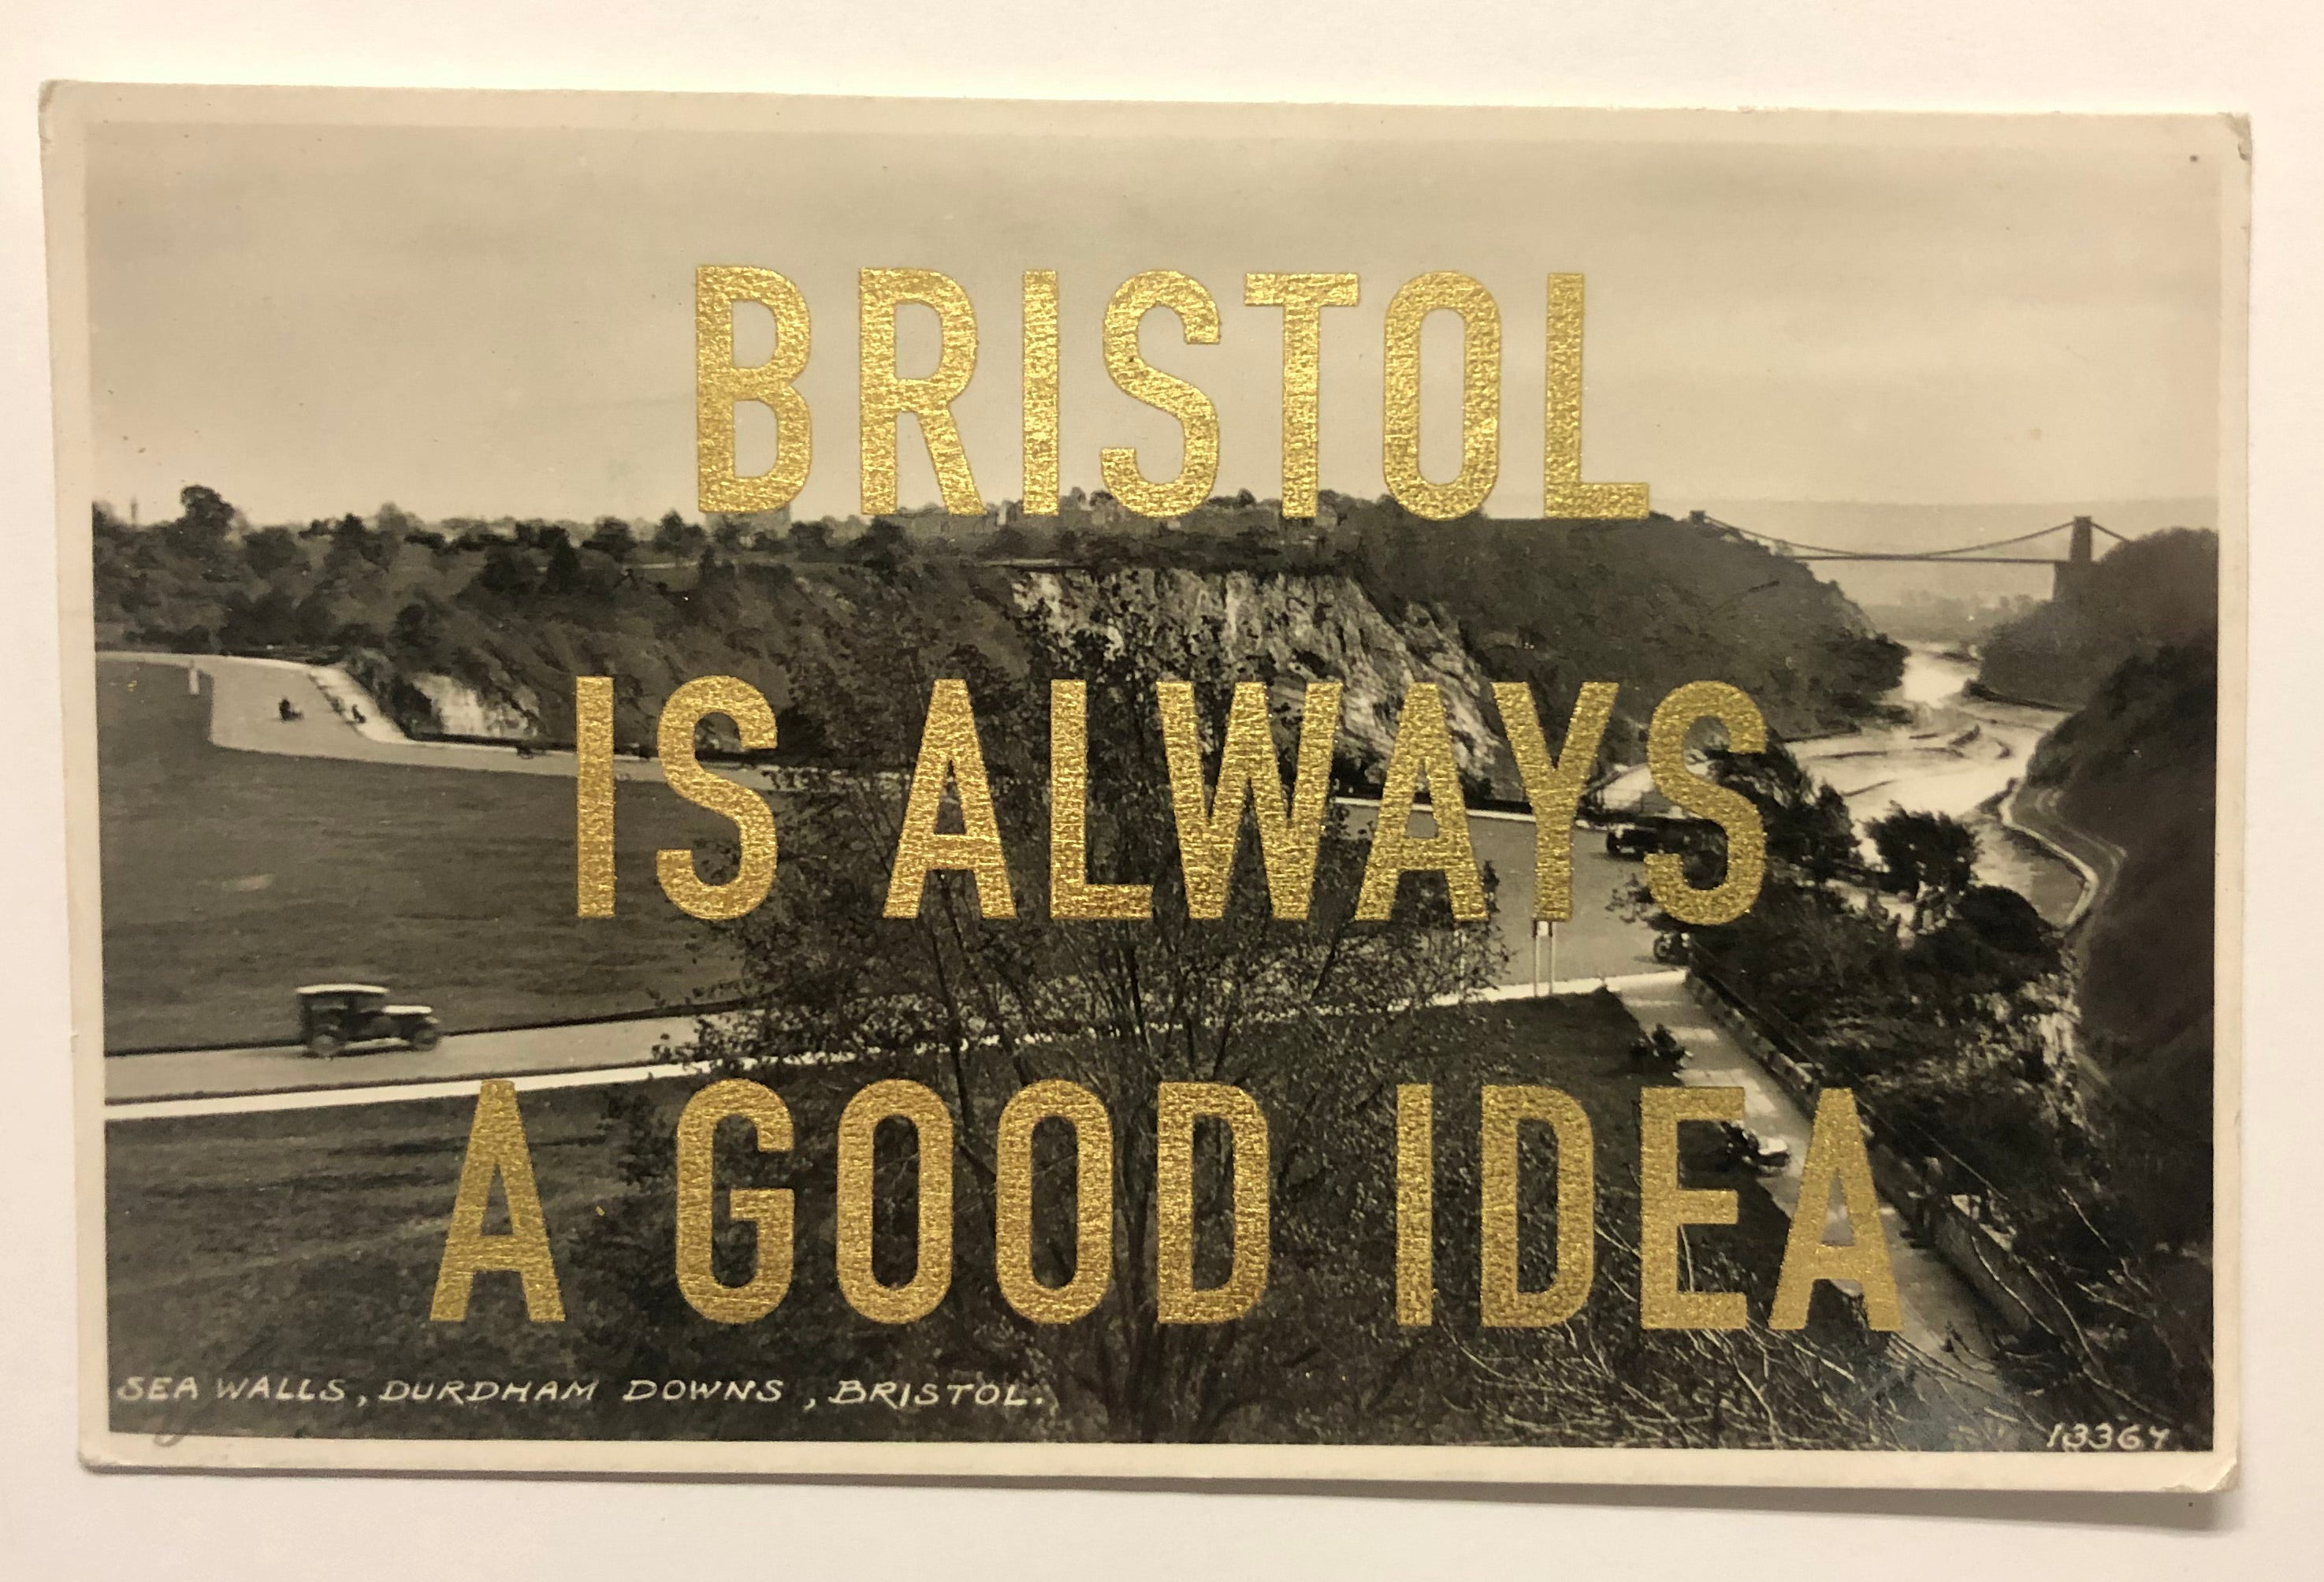 Dave Buonaguidi: Bristol Postcard - Sea Walls, Durdham Downs